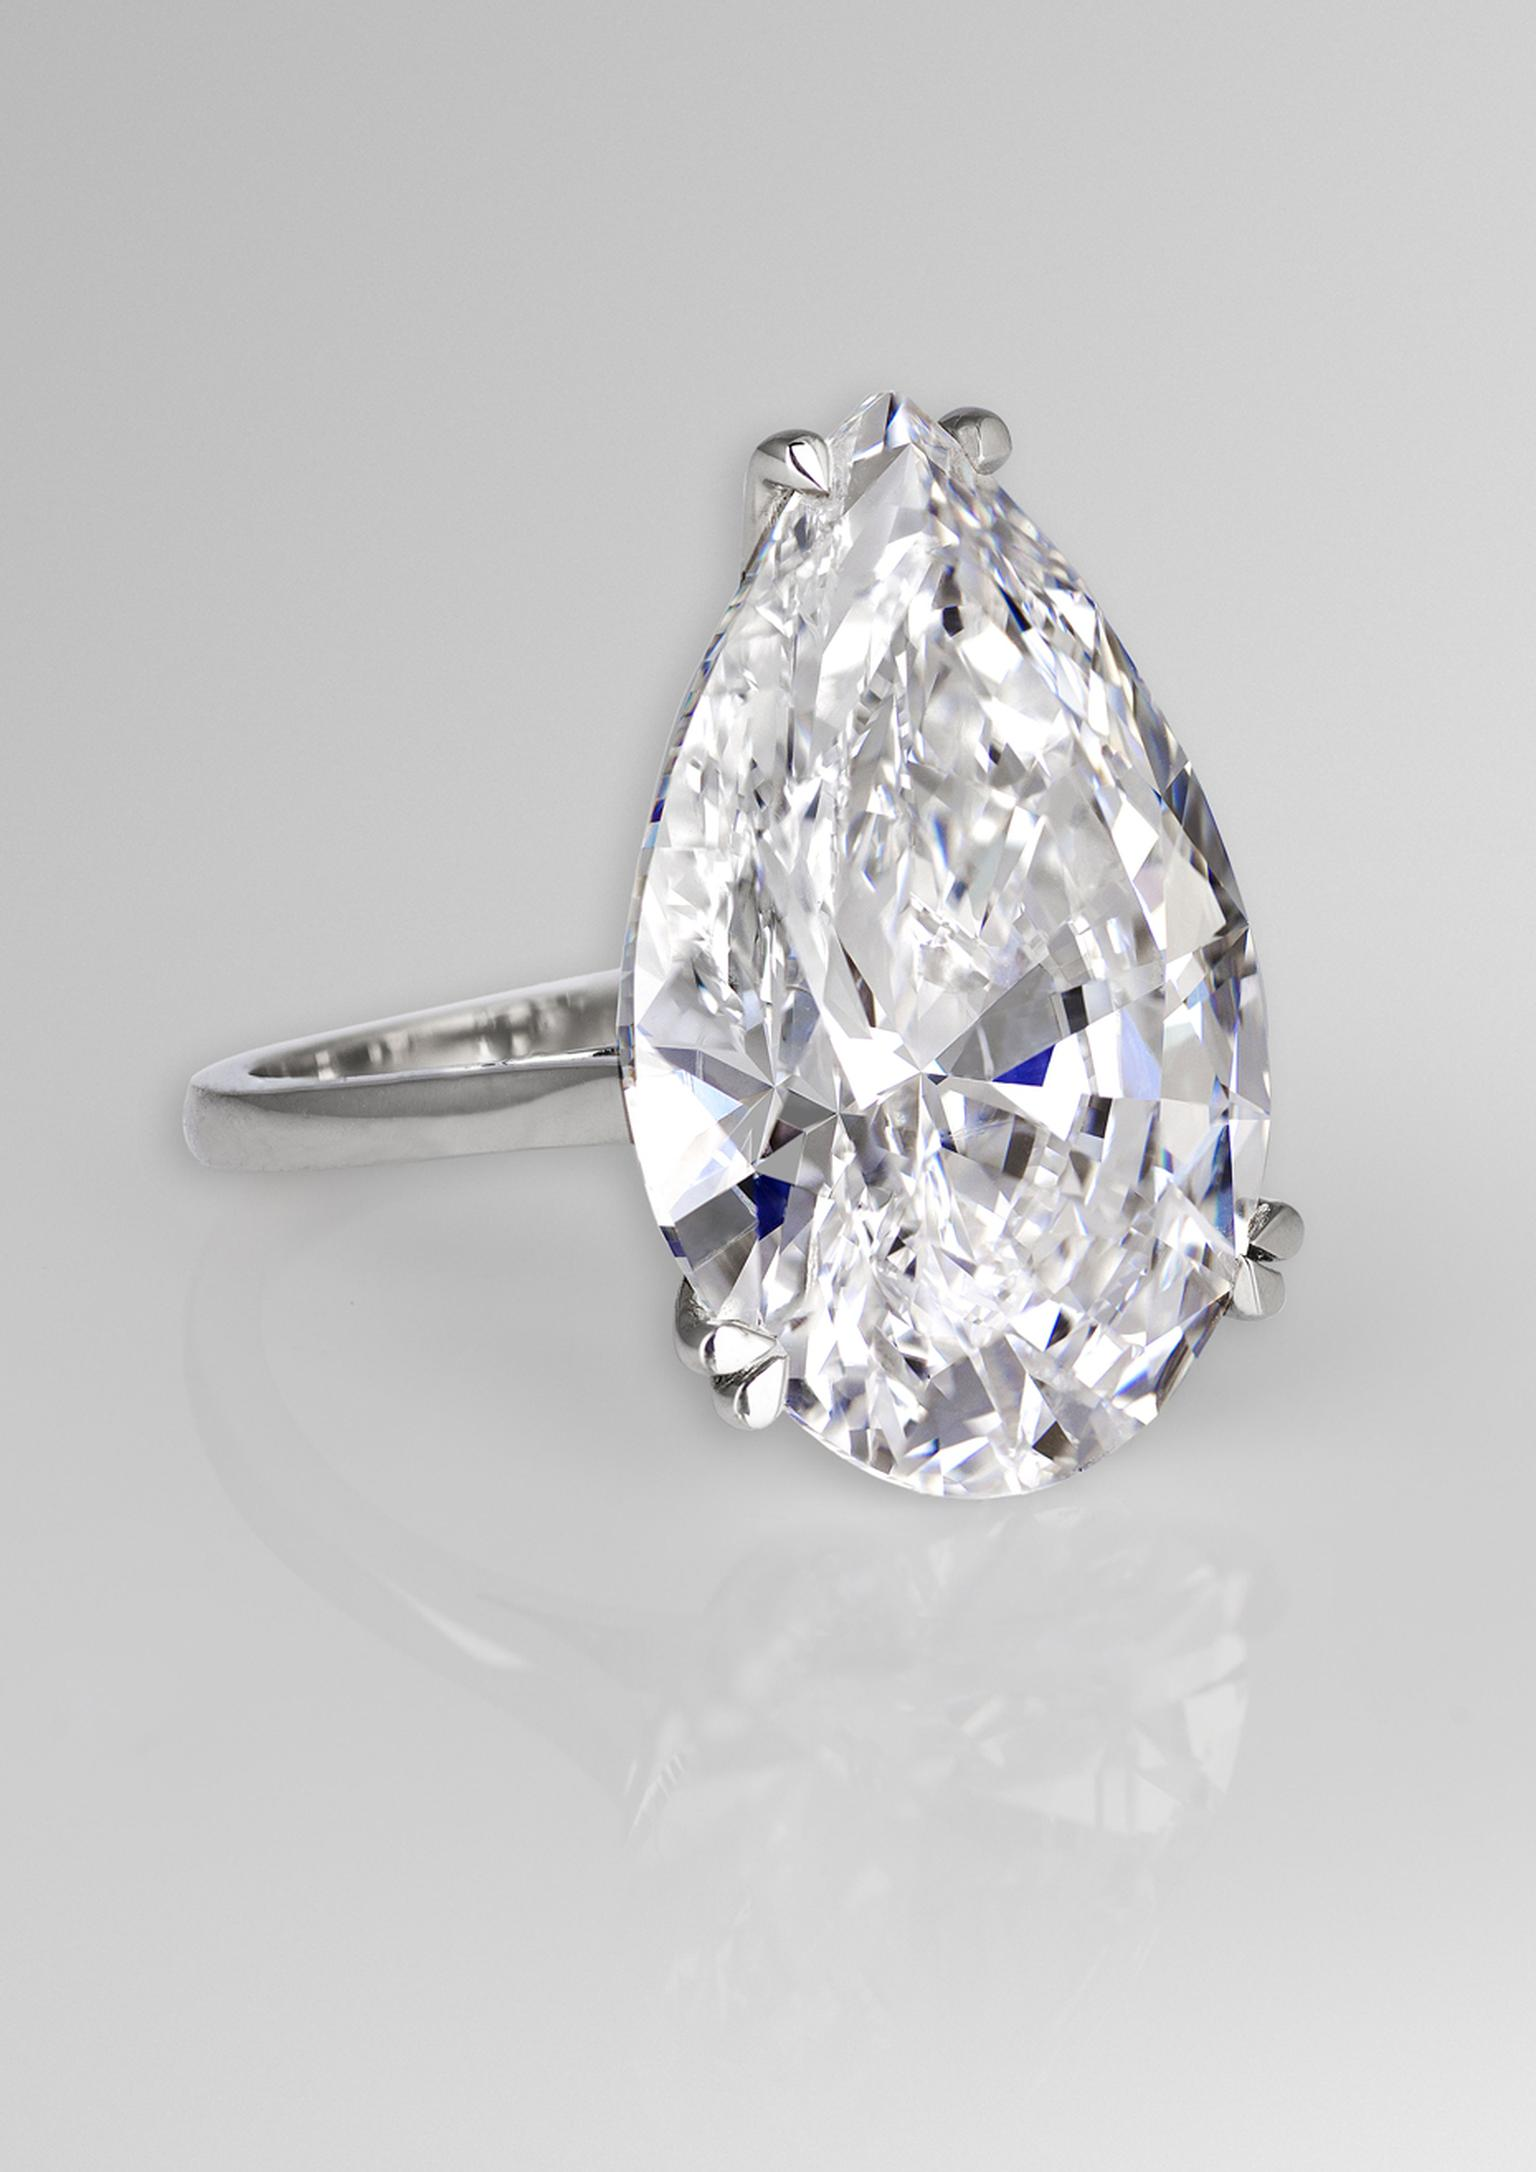 David Morris 22.22ct pear-cut diamond engagement ring.